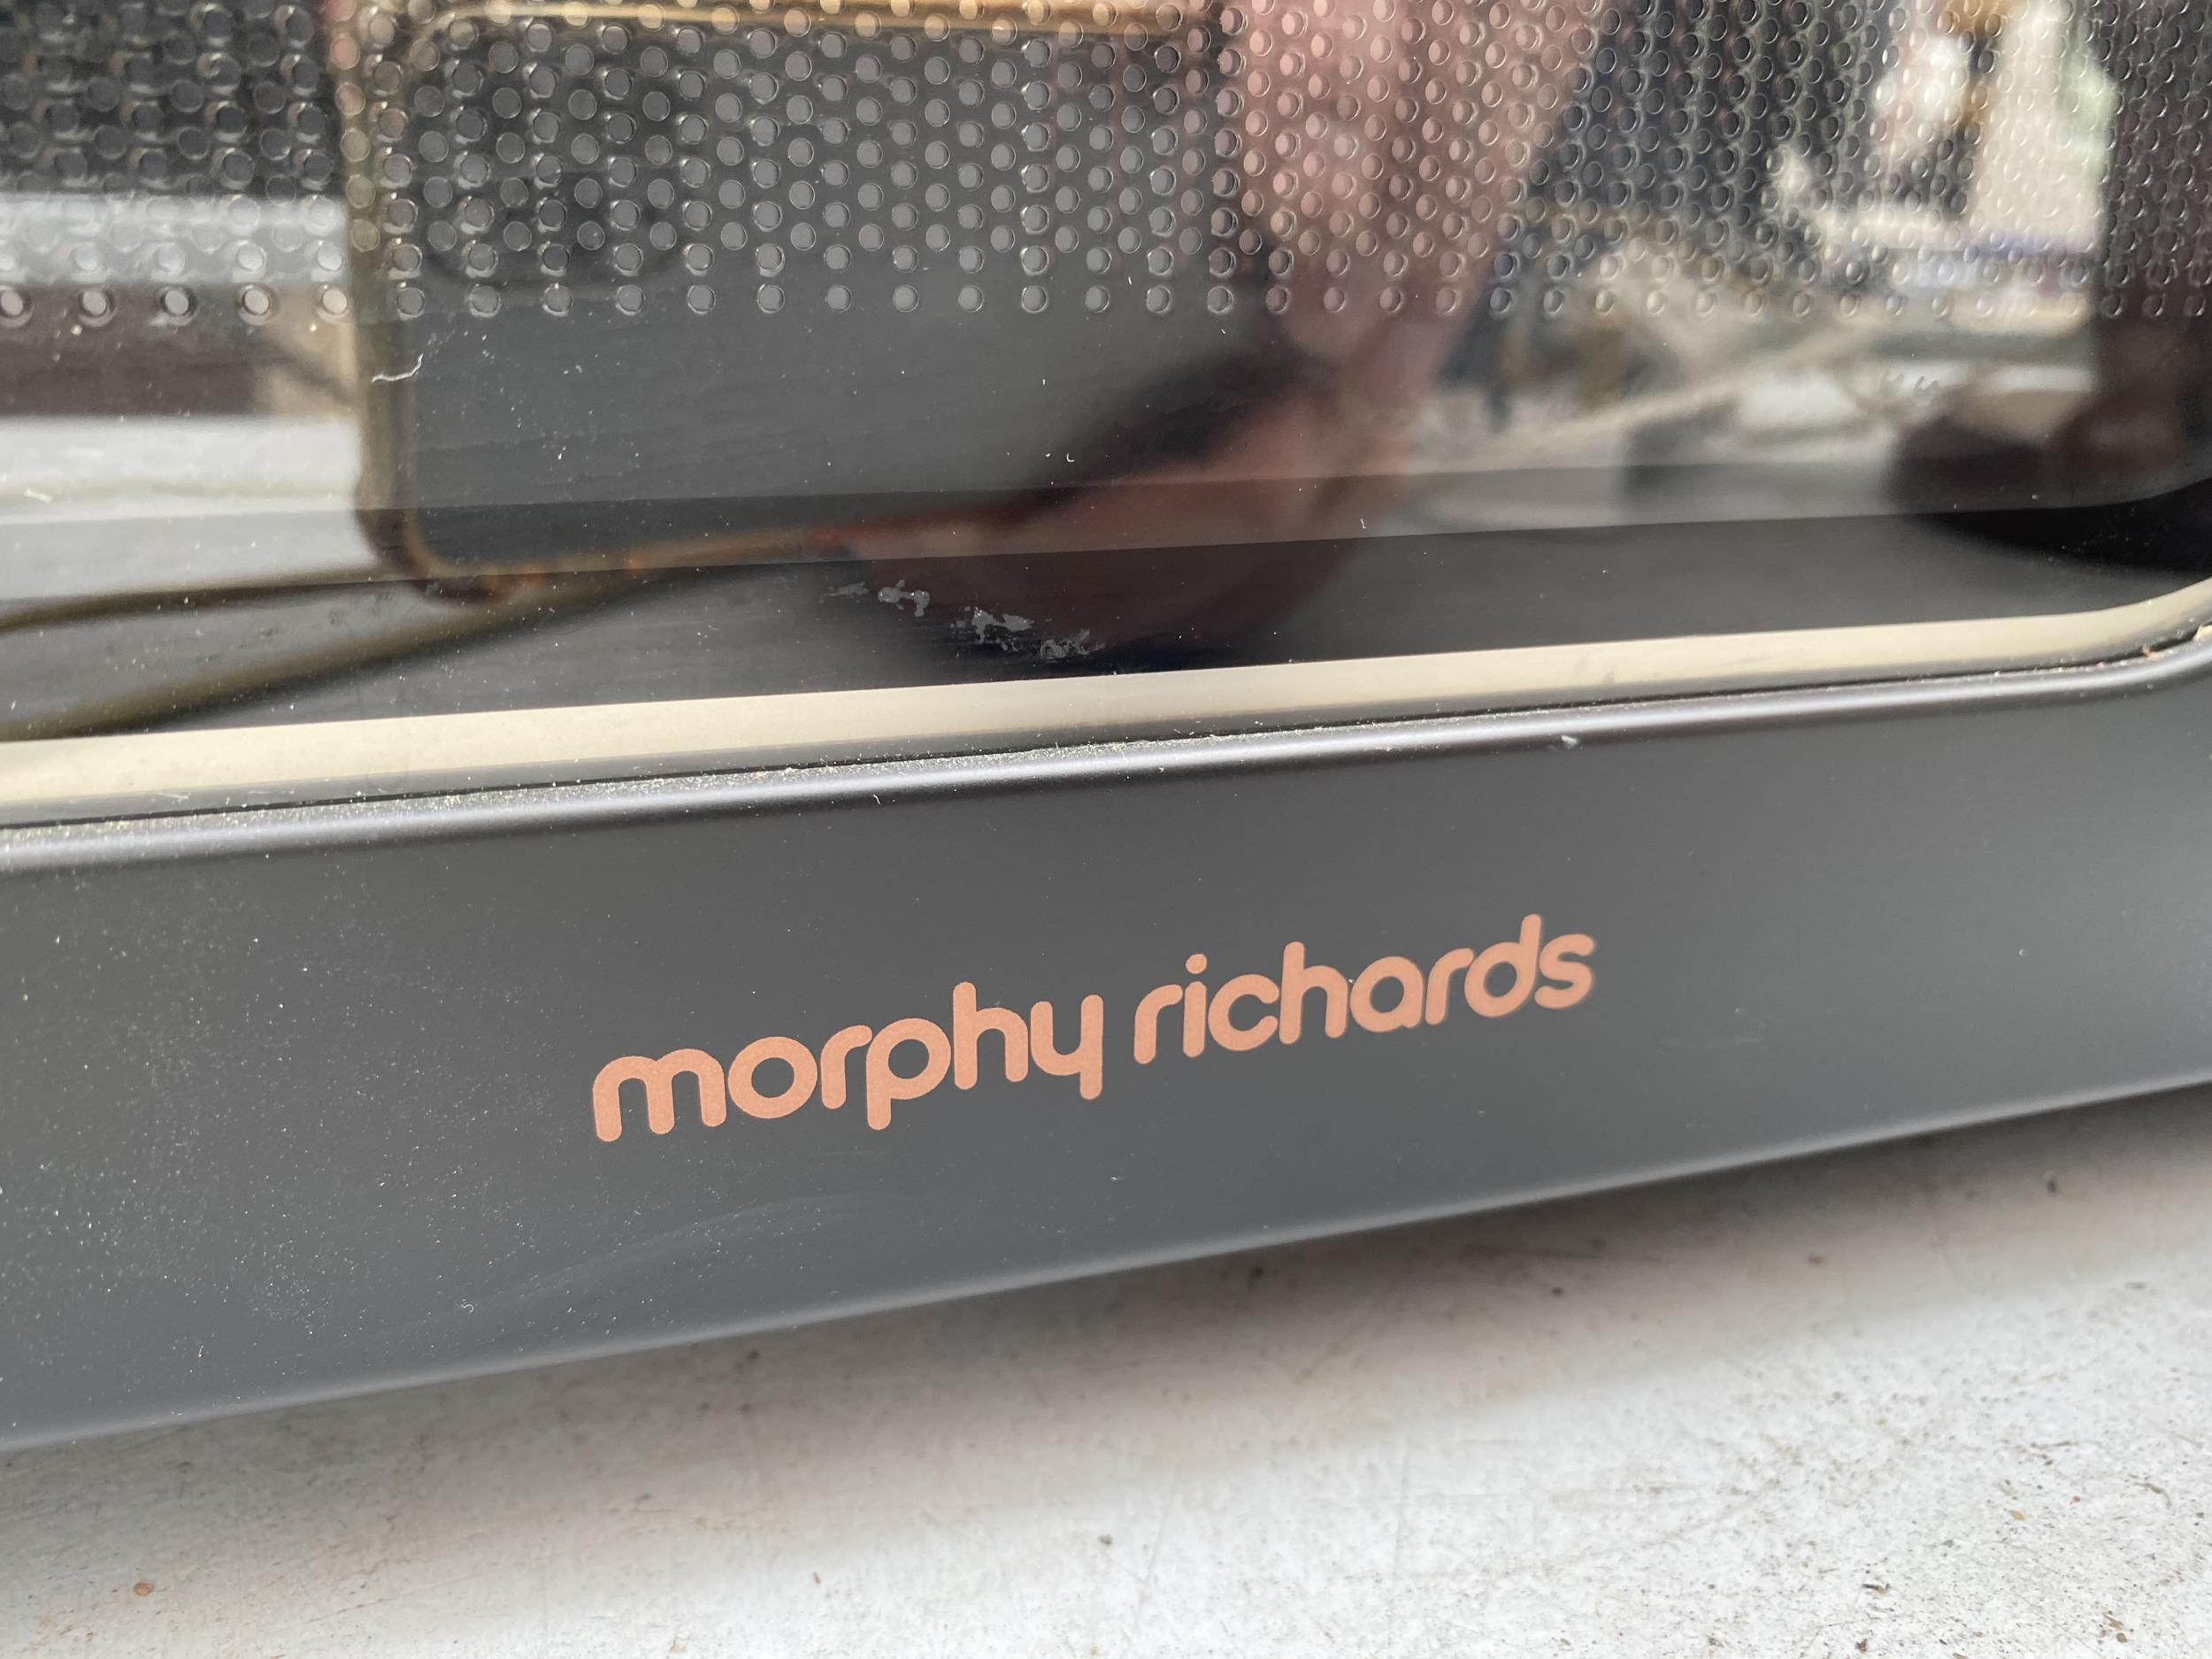 A BLACK MORPHY RICHARDS MICROWAVE OVEN - Image 2 of 3